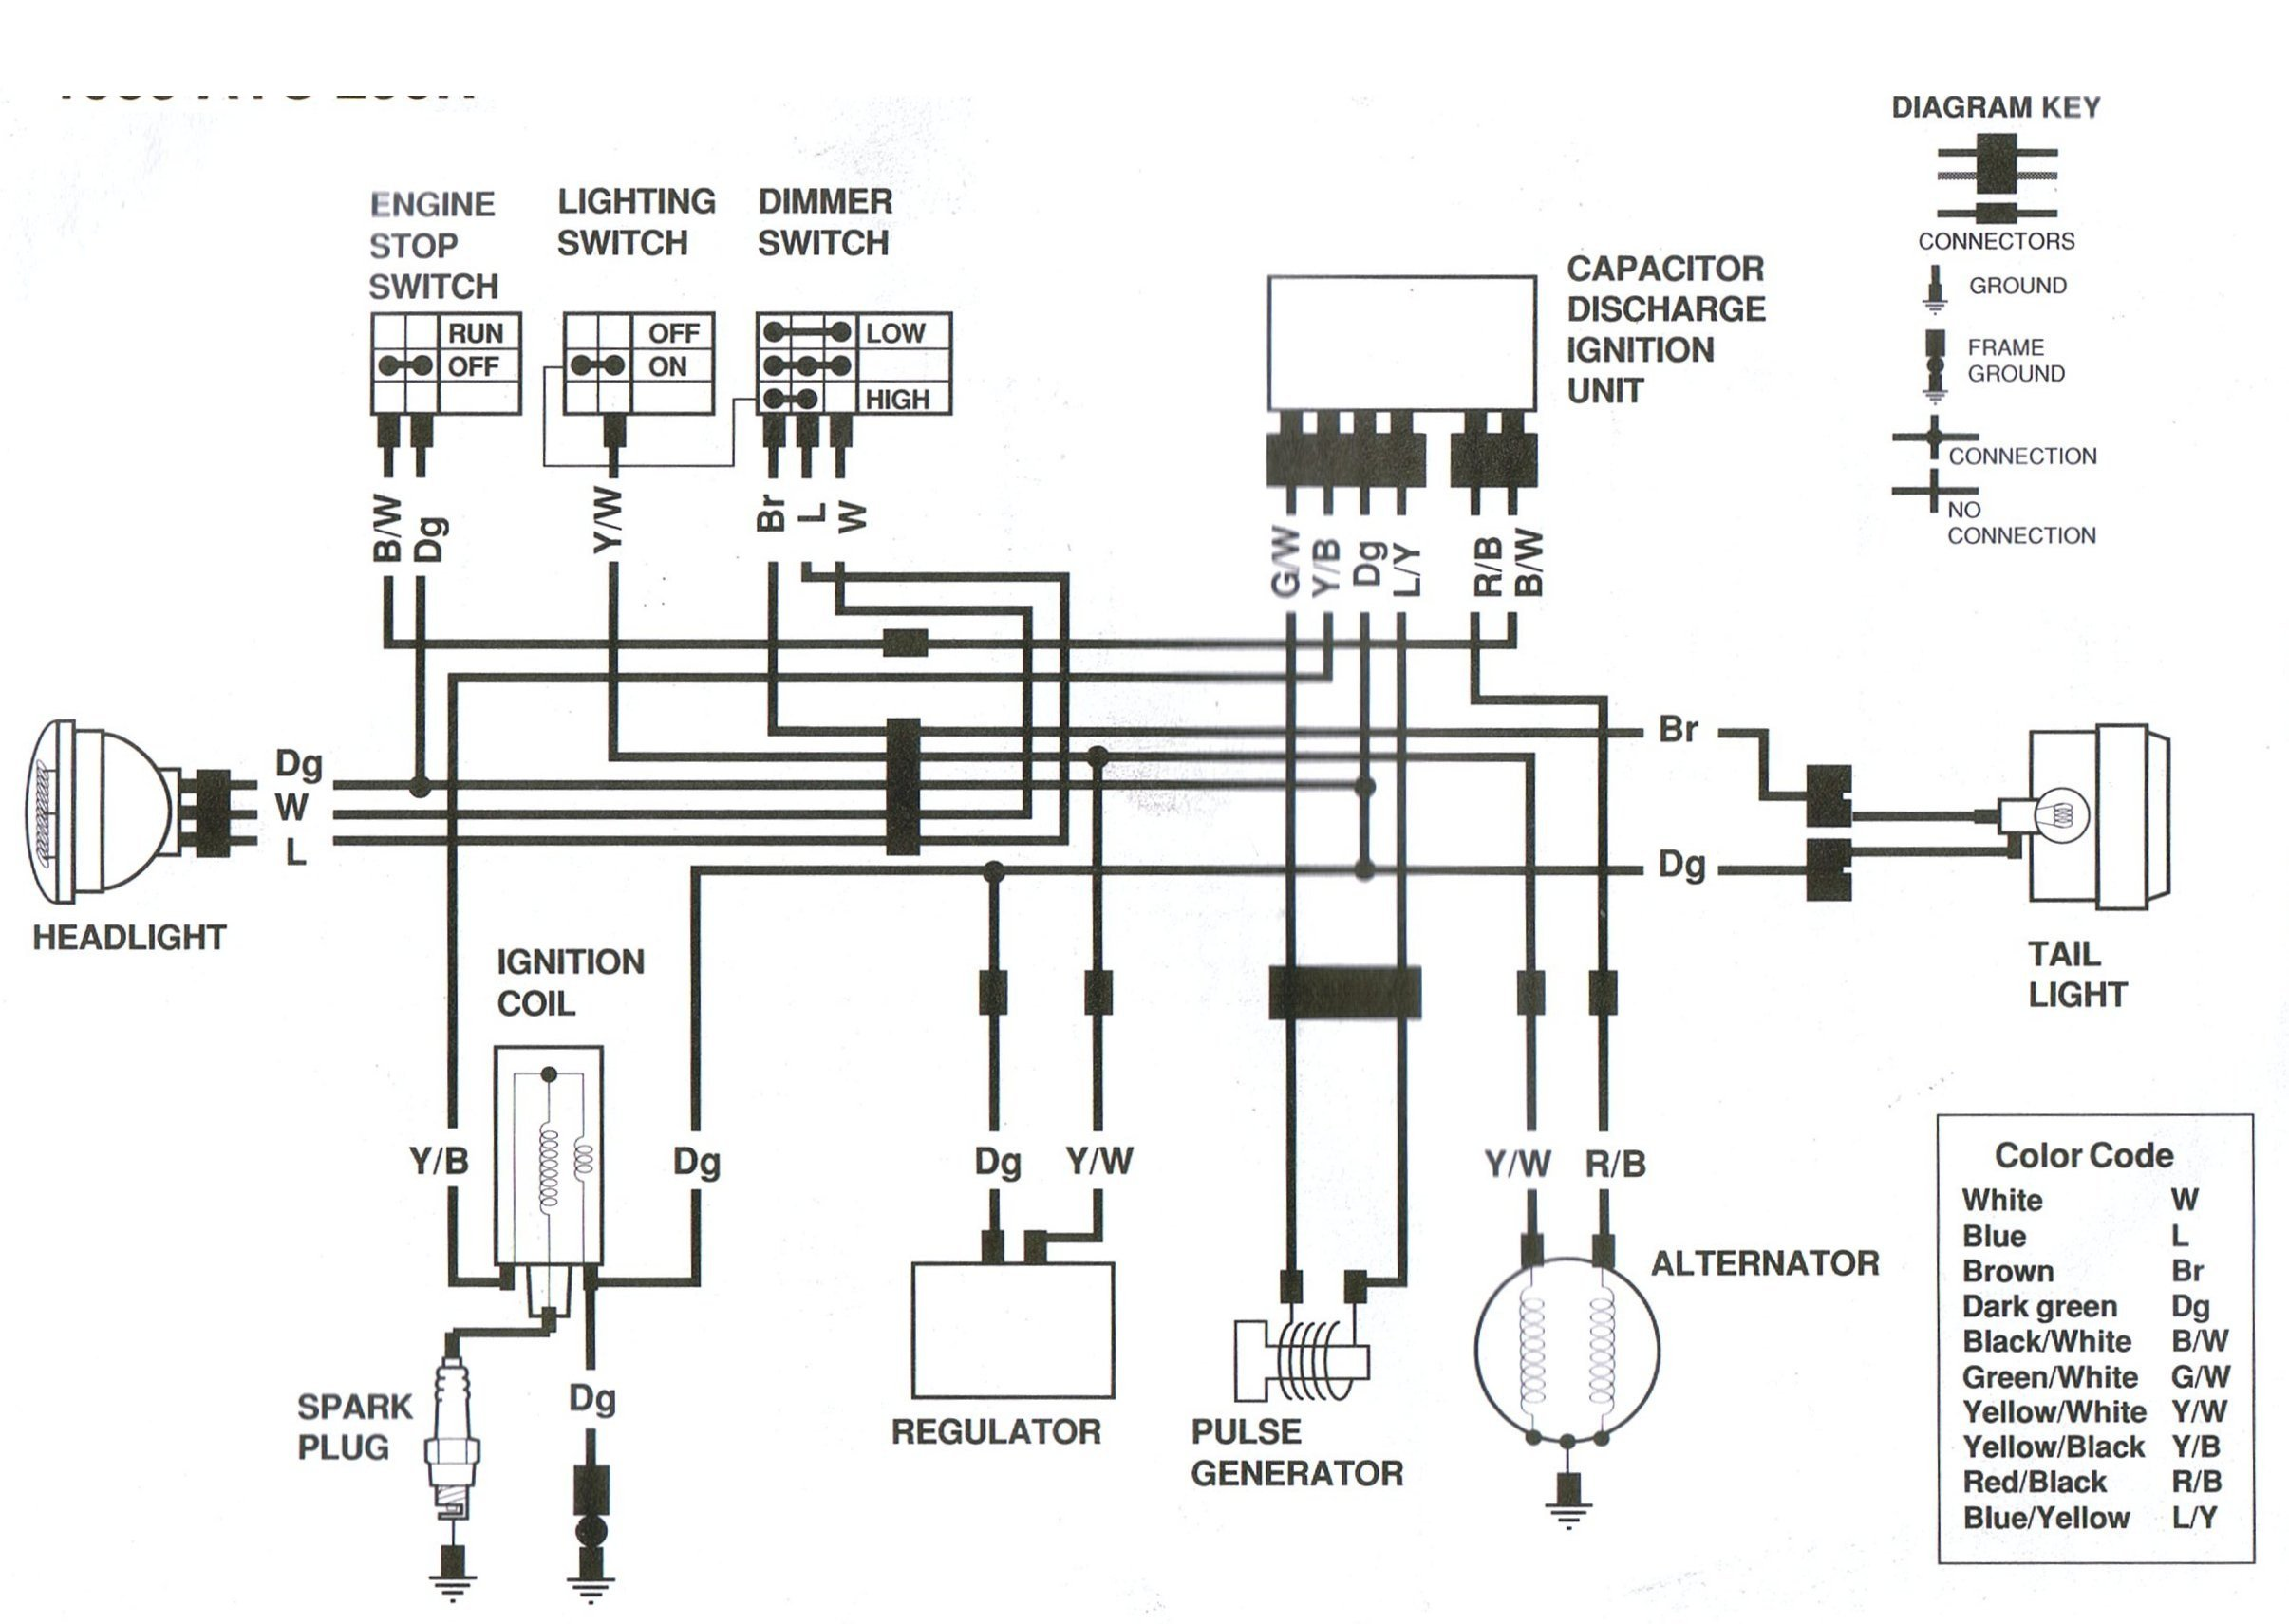 1994 nitro wiring diagram